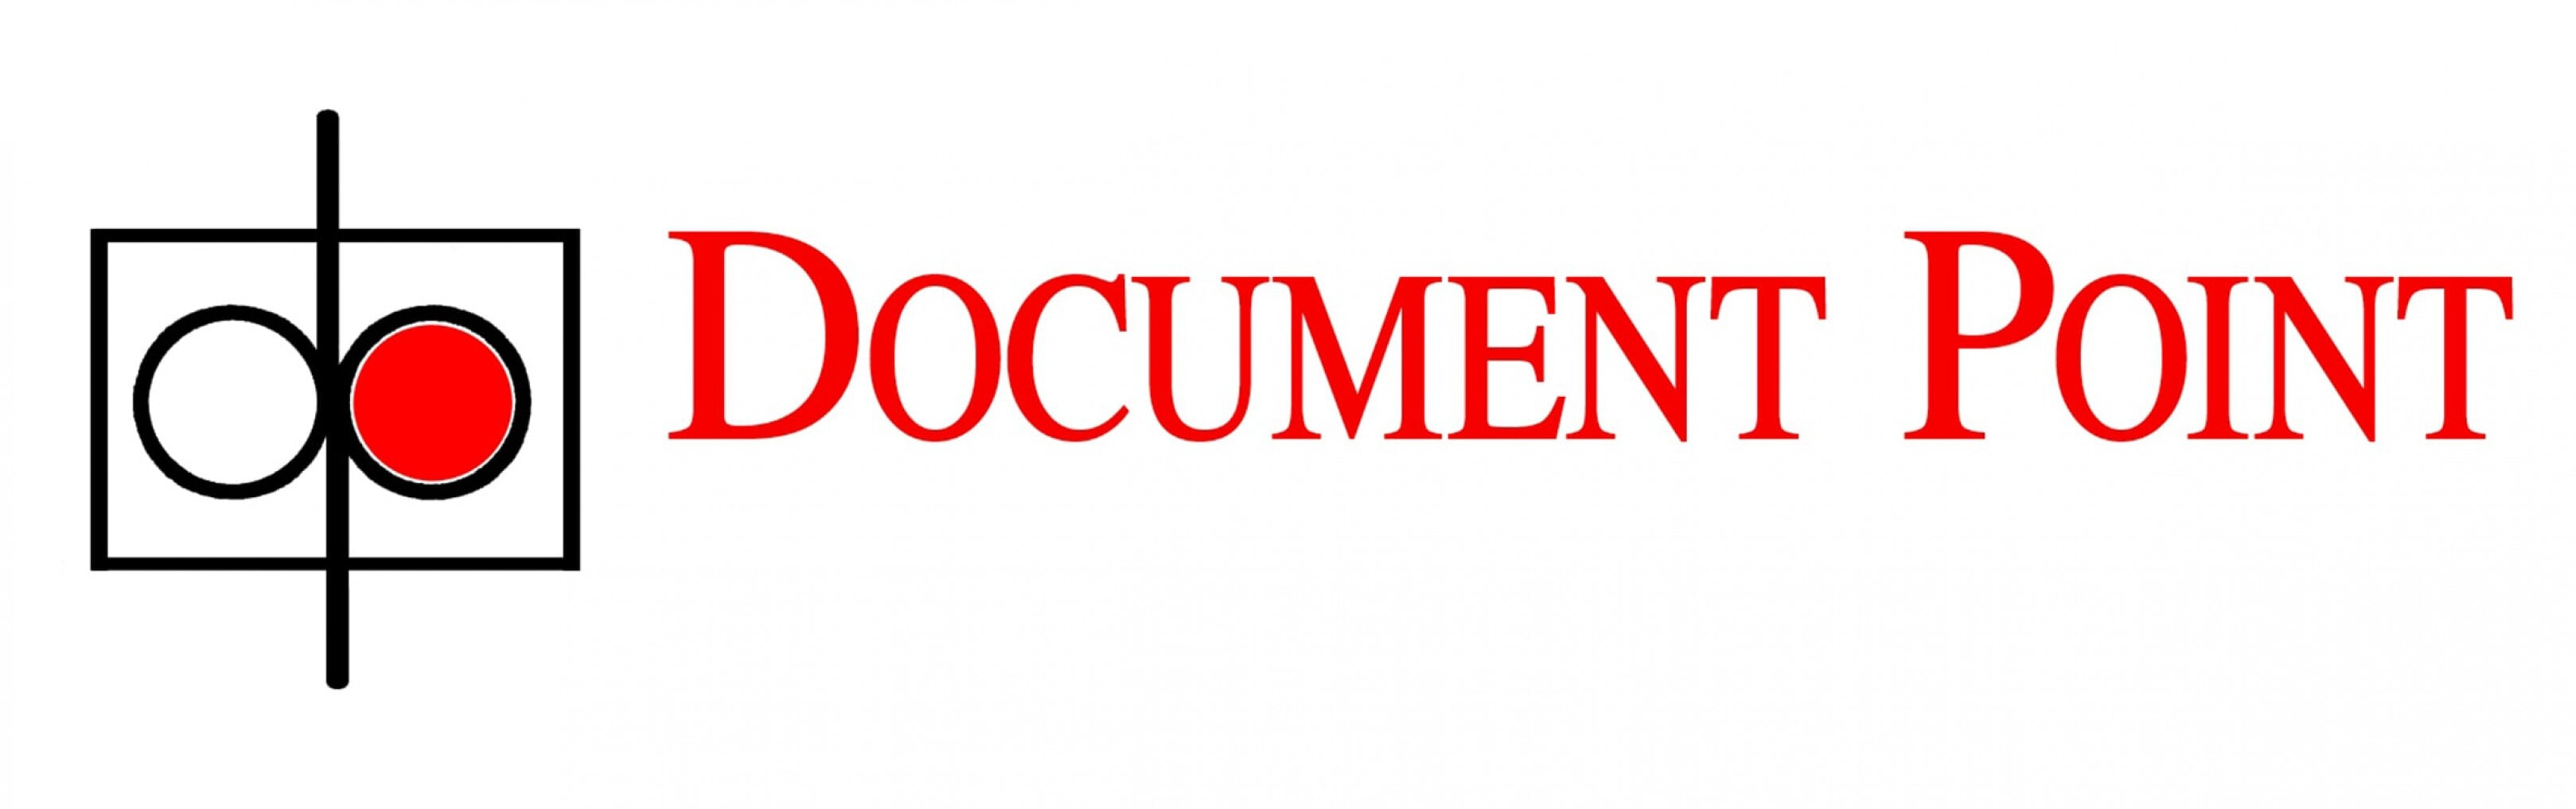 logo document point